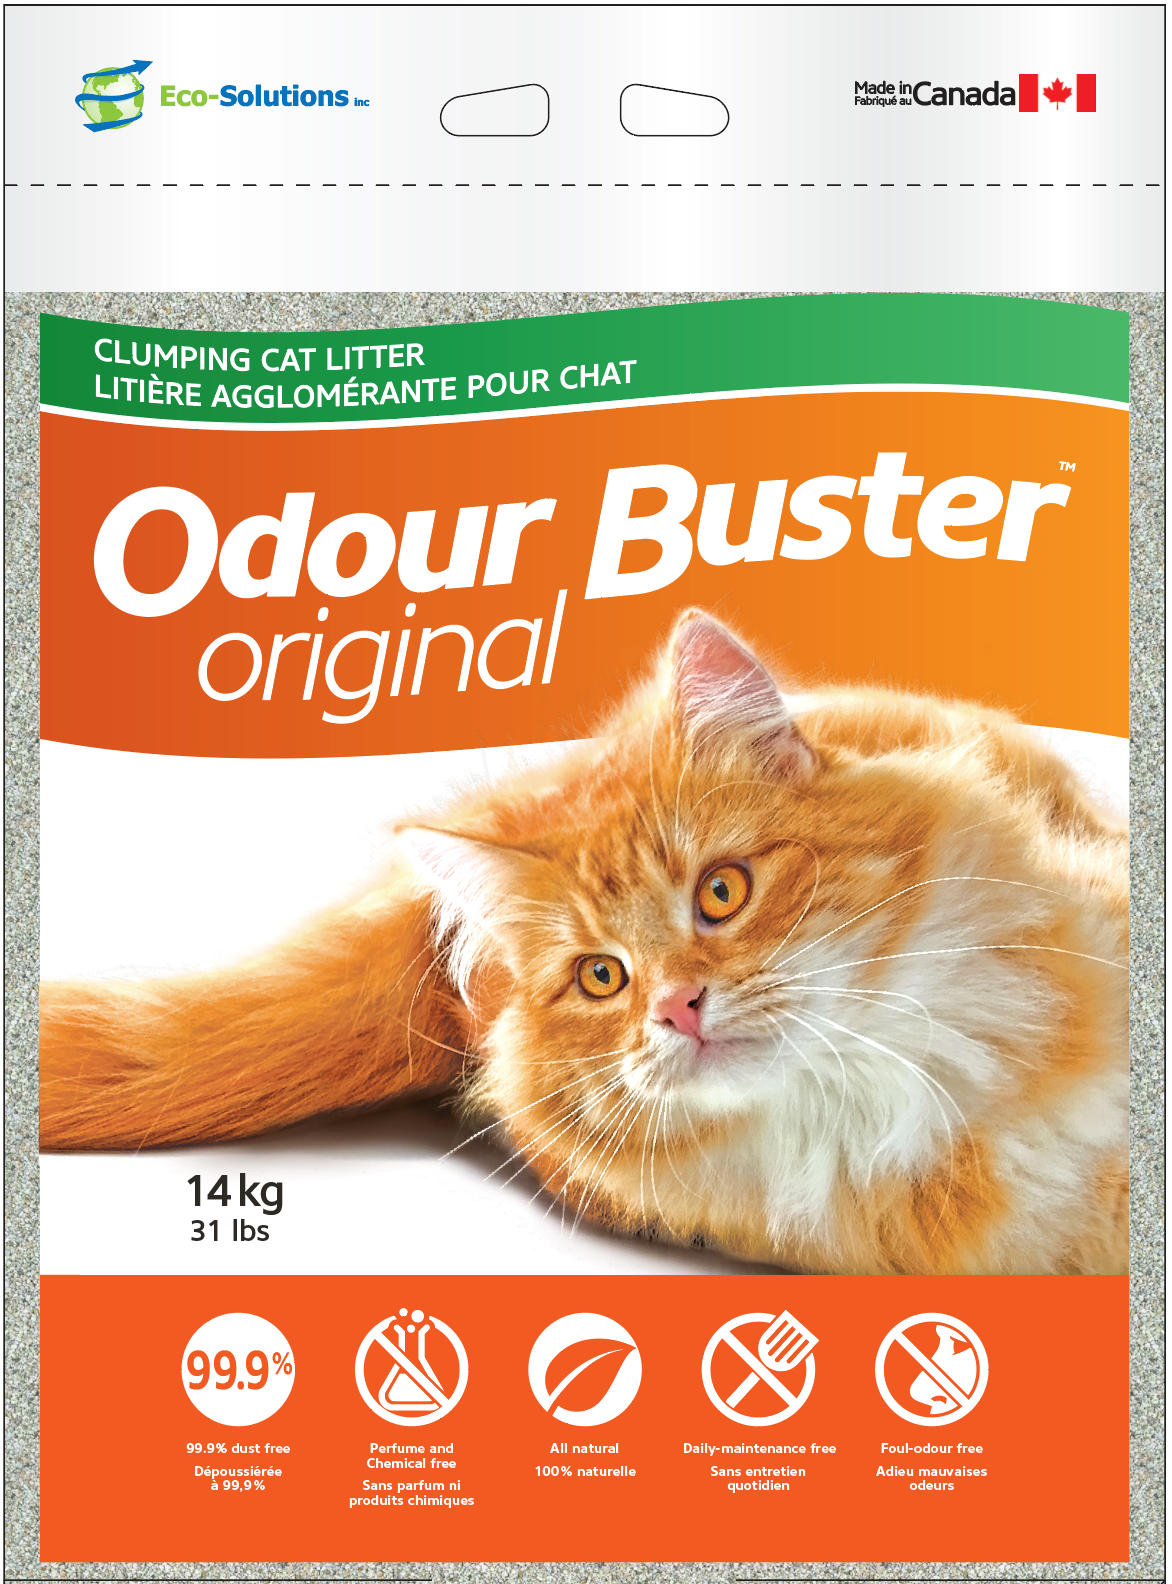 Odour Buster Once a Week Clumping Cat Litter